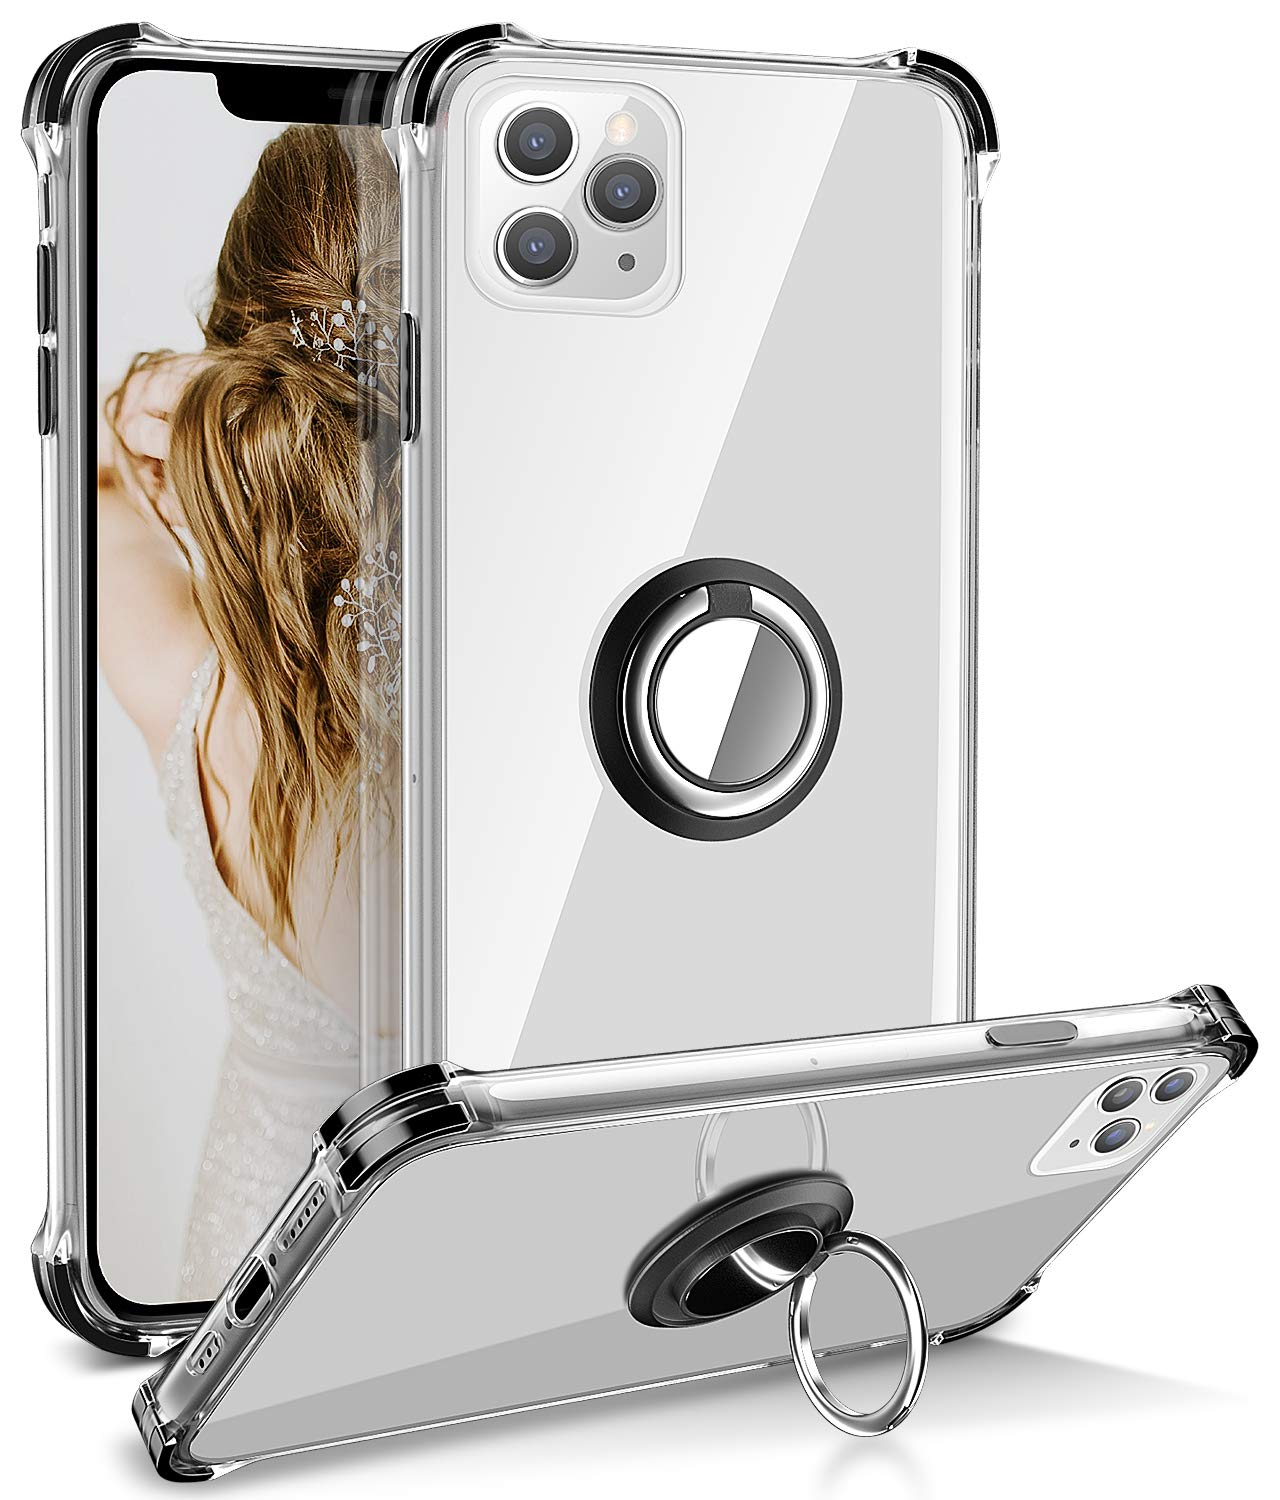 iPhone 11 Pro Case, Daupin Clear iPhone 11 Pro Case with 360 Rotatable Ring Kickstand Fit Metal Car Mount and Soft TPU Bumper PC Hard Back Protective Phone Case for iPhone 11 Pro 5.8 inch(Black)